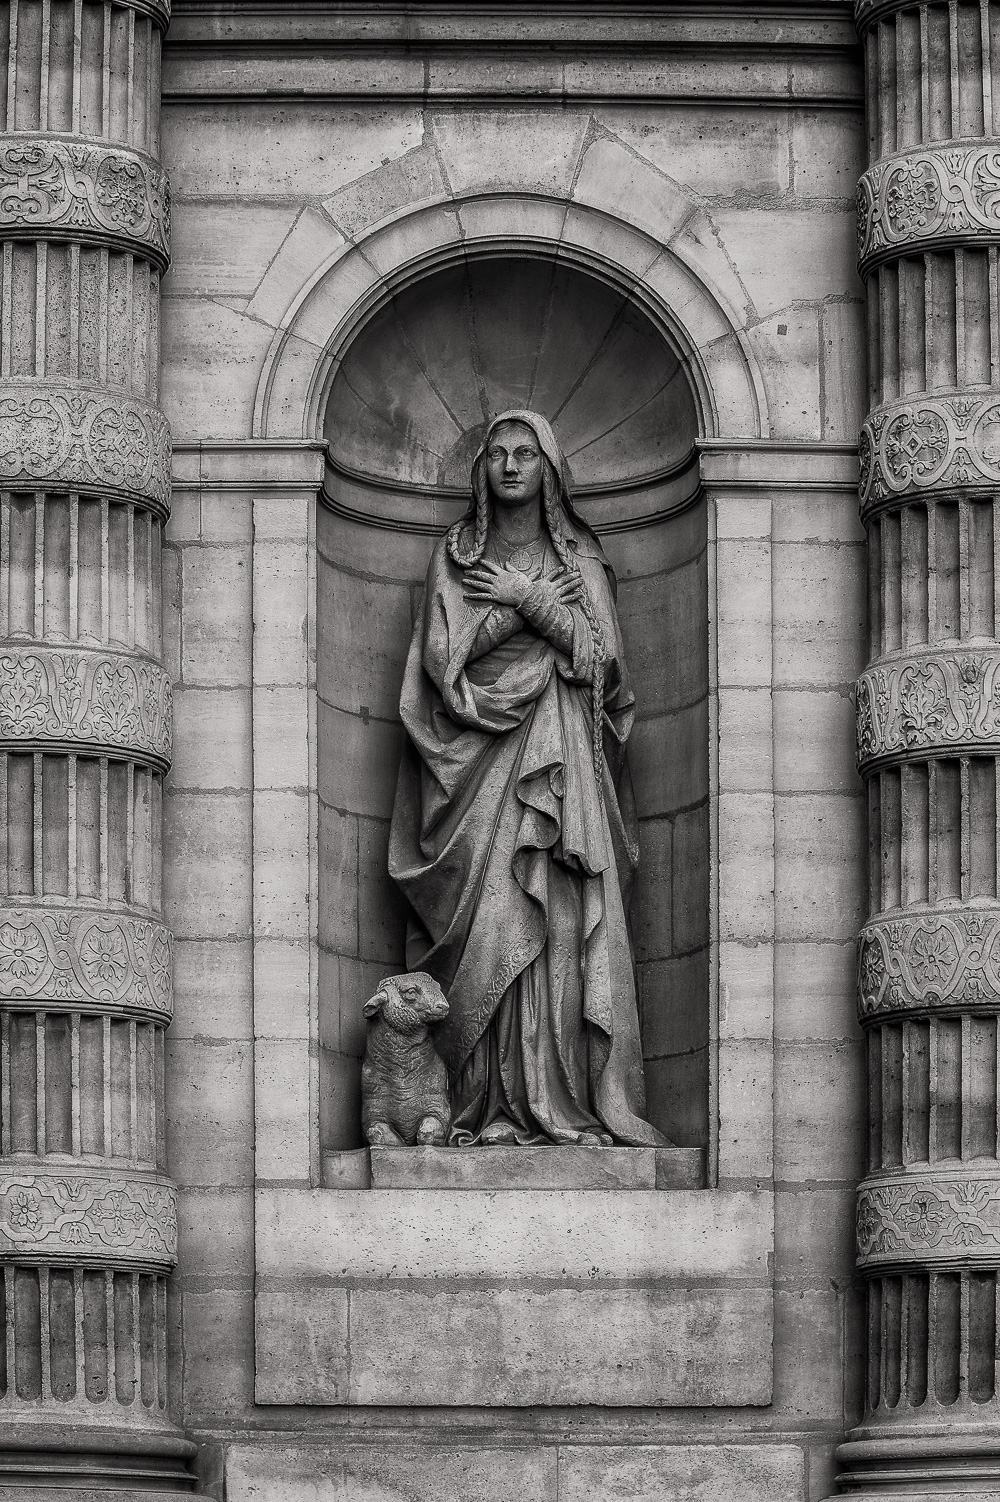 Paris is a beautiful city full of history and amazing architecture. Many of the ciiy's grand buildings include delights such as the statue found in this niche.